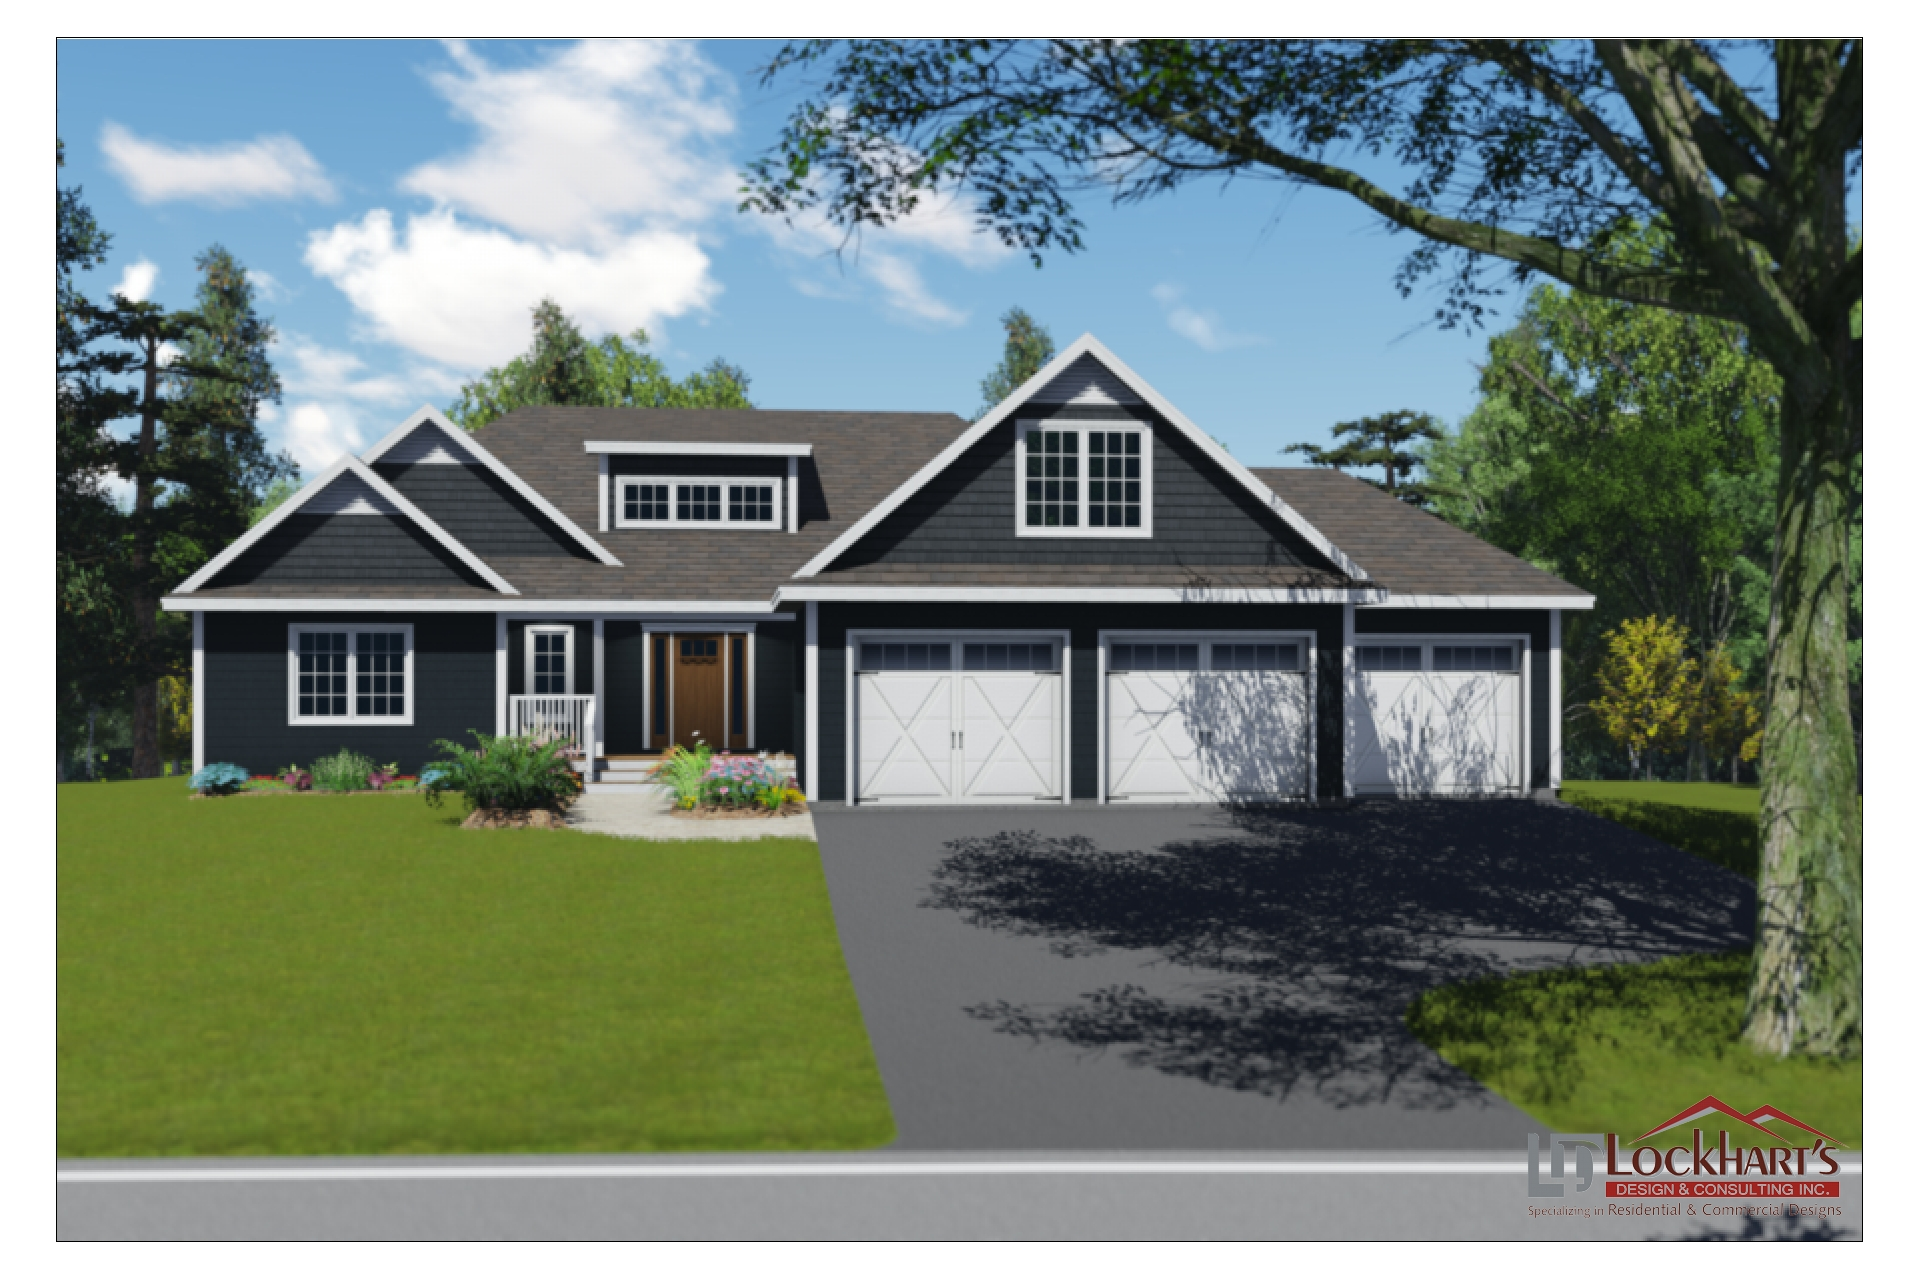 Lockhart's Design House Plan 1330 - Kingston